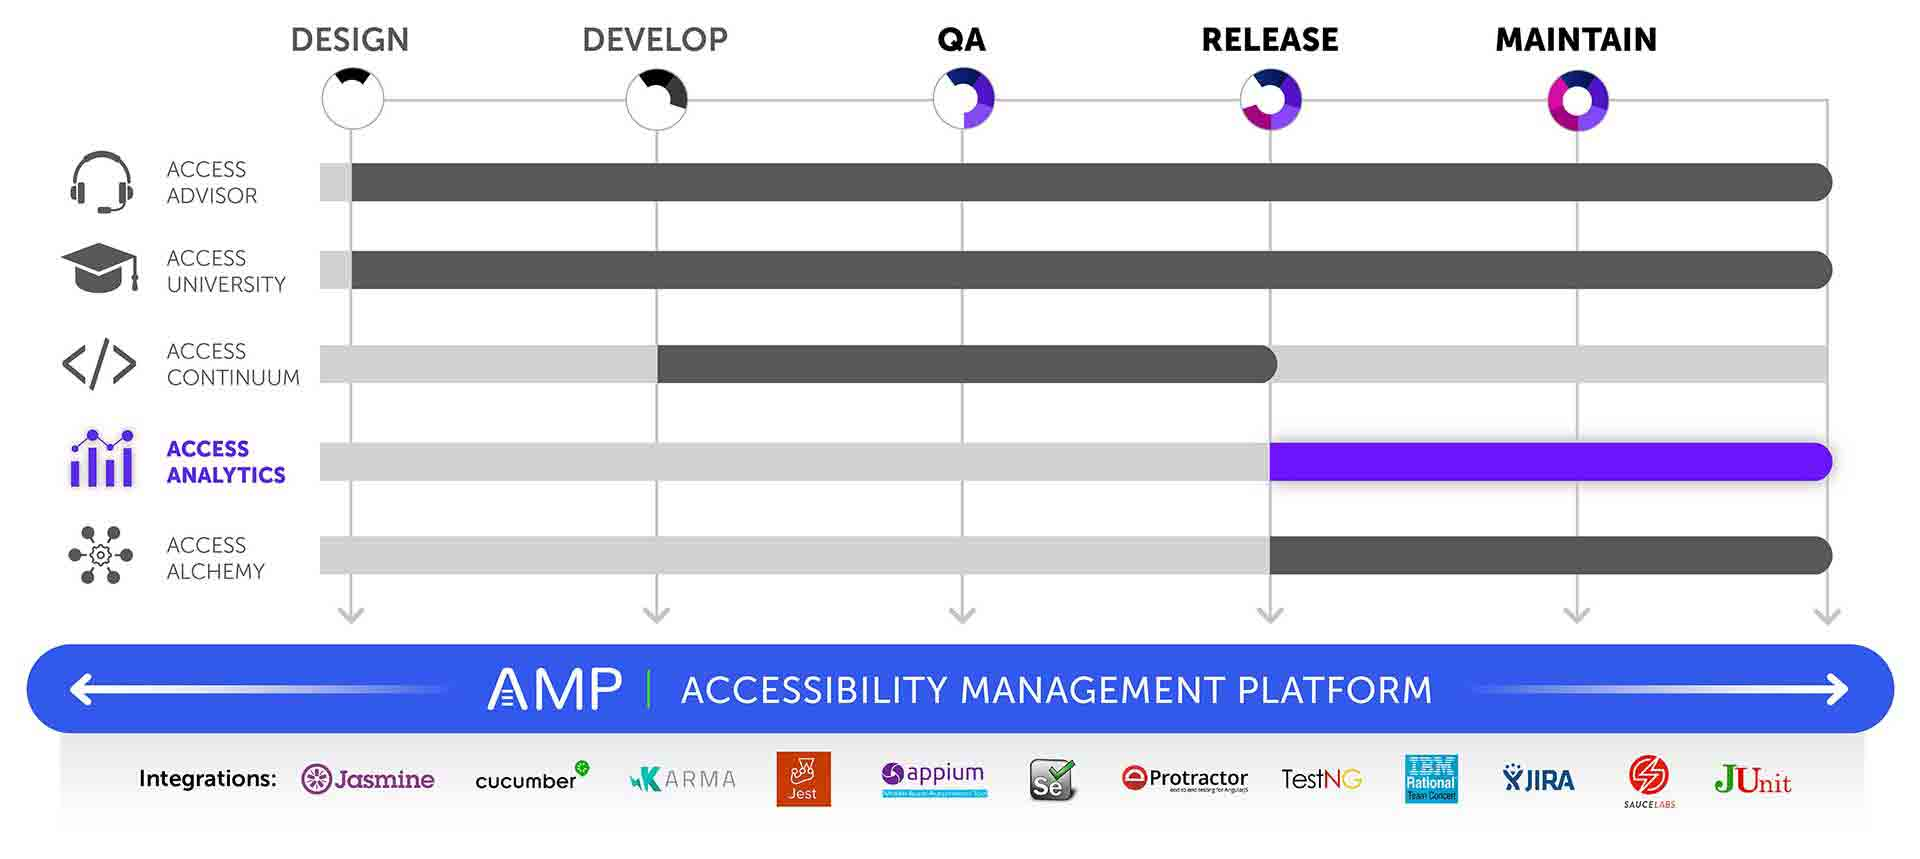 Graphic showing that AMP is the platform for all products and covers all phases of the software development lifecycle with integrations for Jasmine, Cucumber, Karma, Jest, Appium, Selenium, Protactor, TestNG, IBM Rational Team Concert, JIRA, JUnit, and Sauce Labs. Access Analytics is shown highlighted and covers QA, Release, and Maintain stages as well.